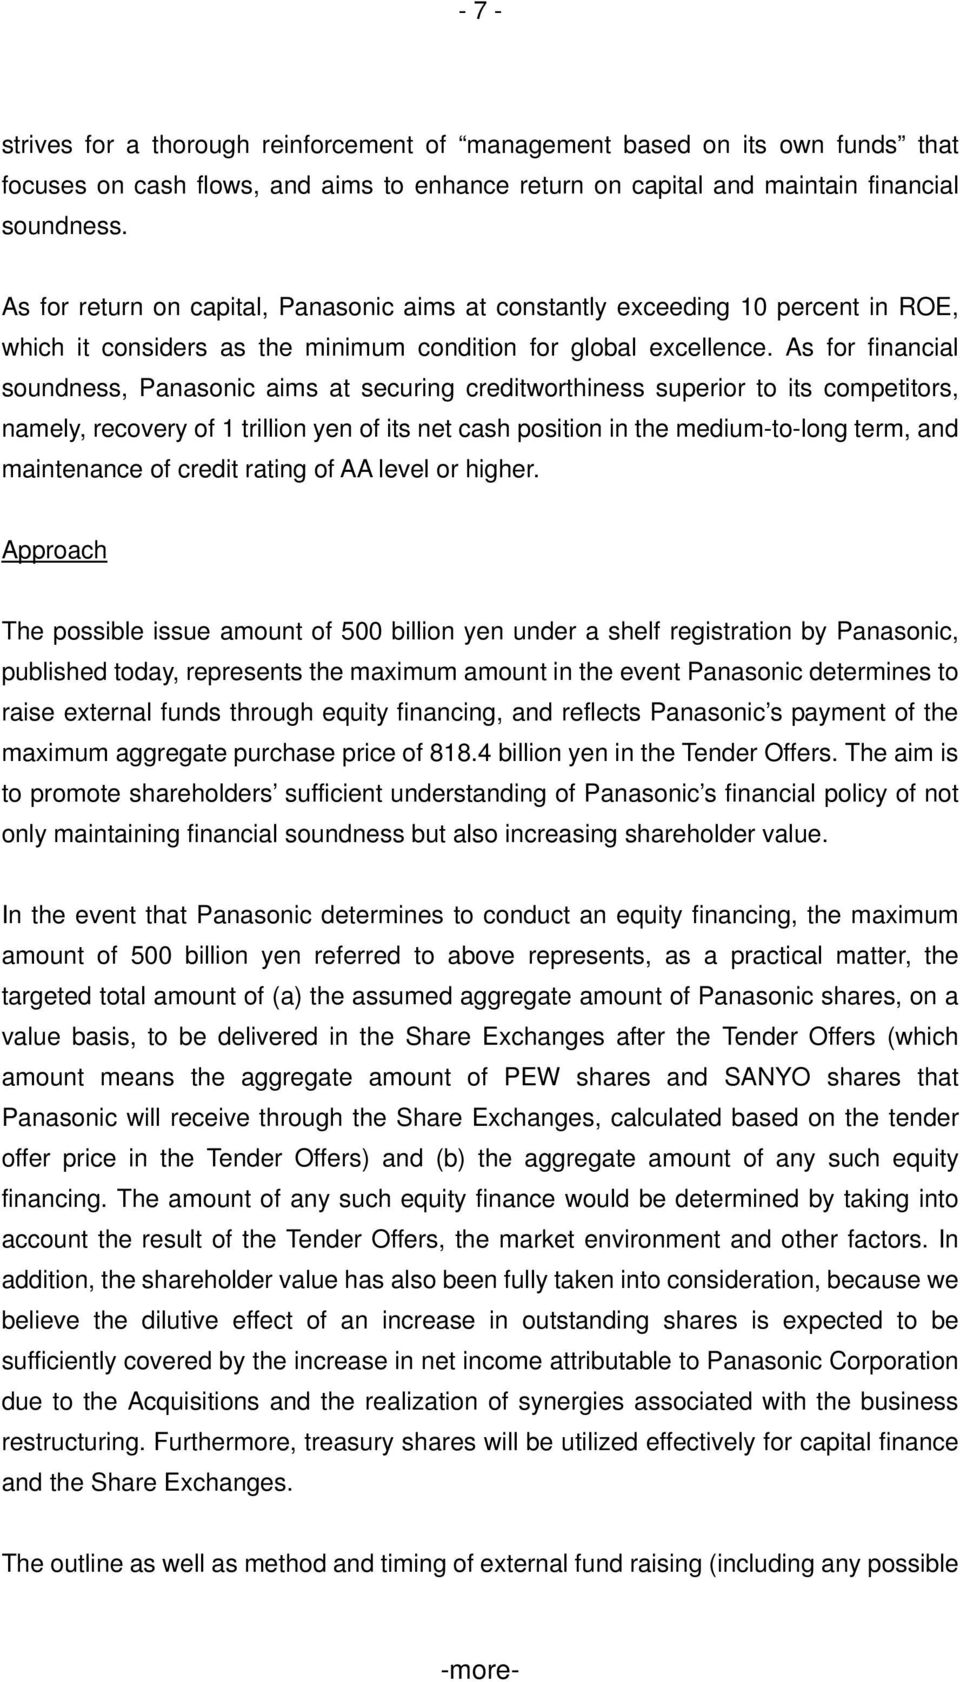 As for financial soundness, Panasonic aims at securing creditworthiness superior to its competitors, namely, recovery of 1 trillion yen of its net cash position in the medium-to-long term, and